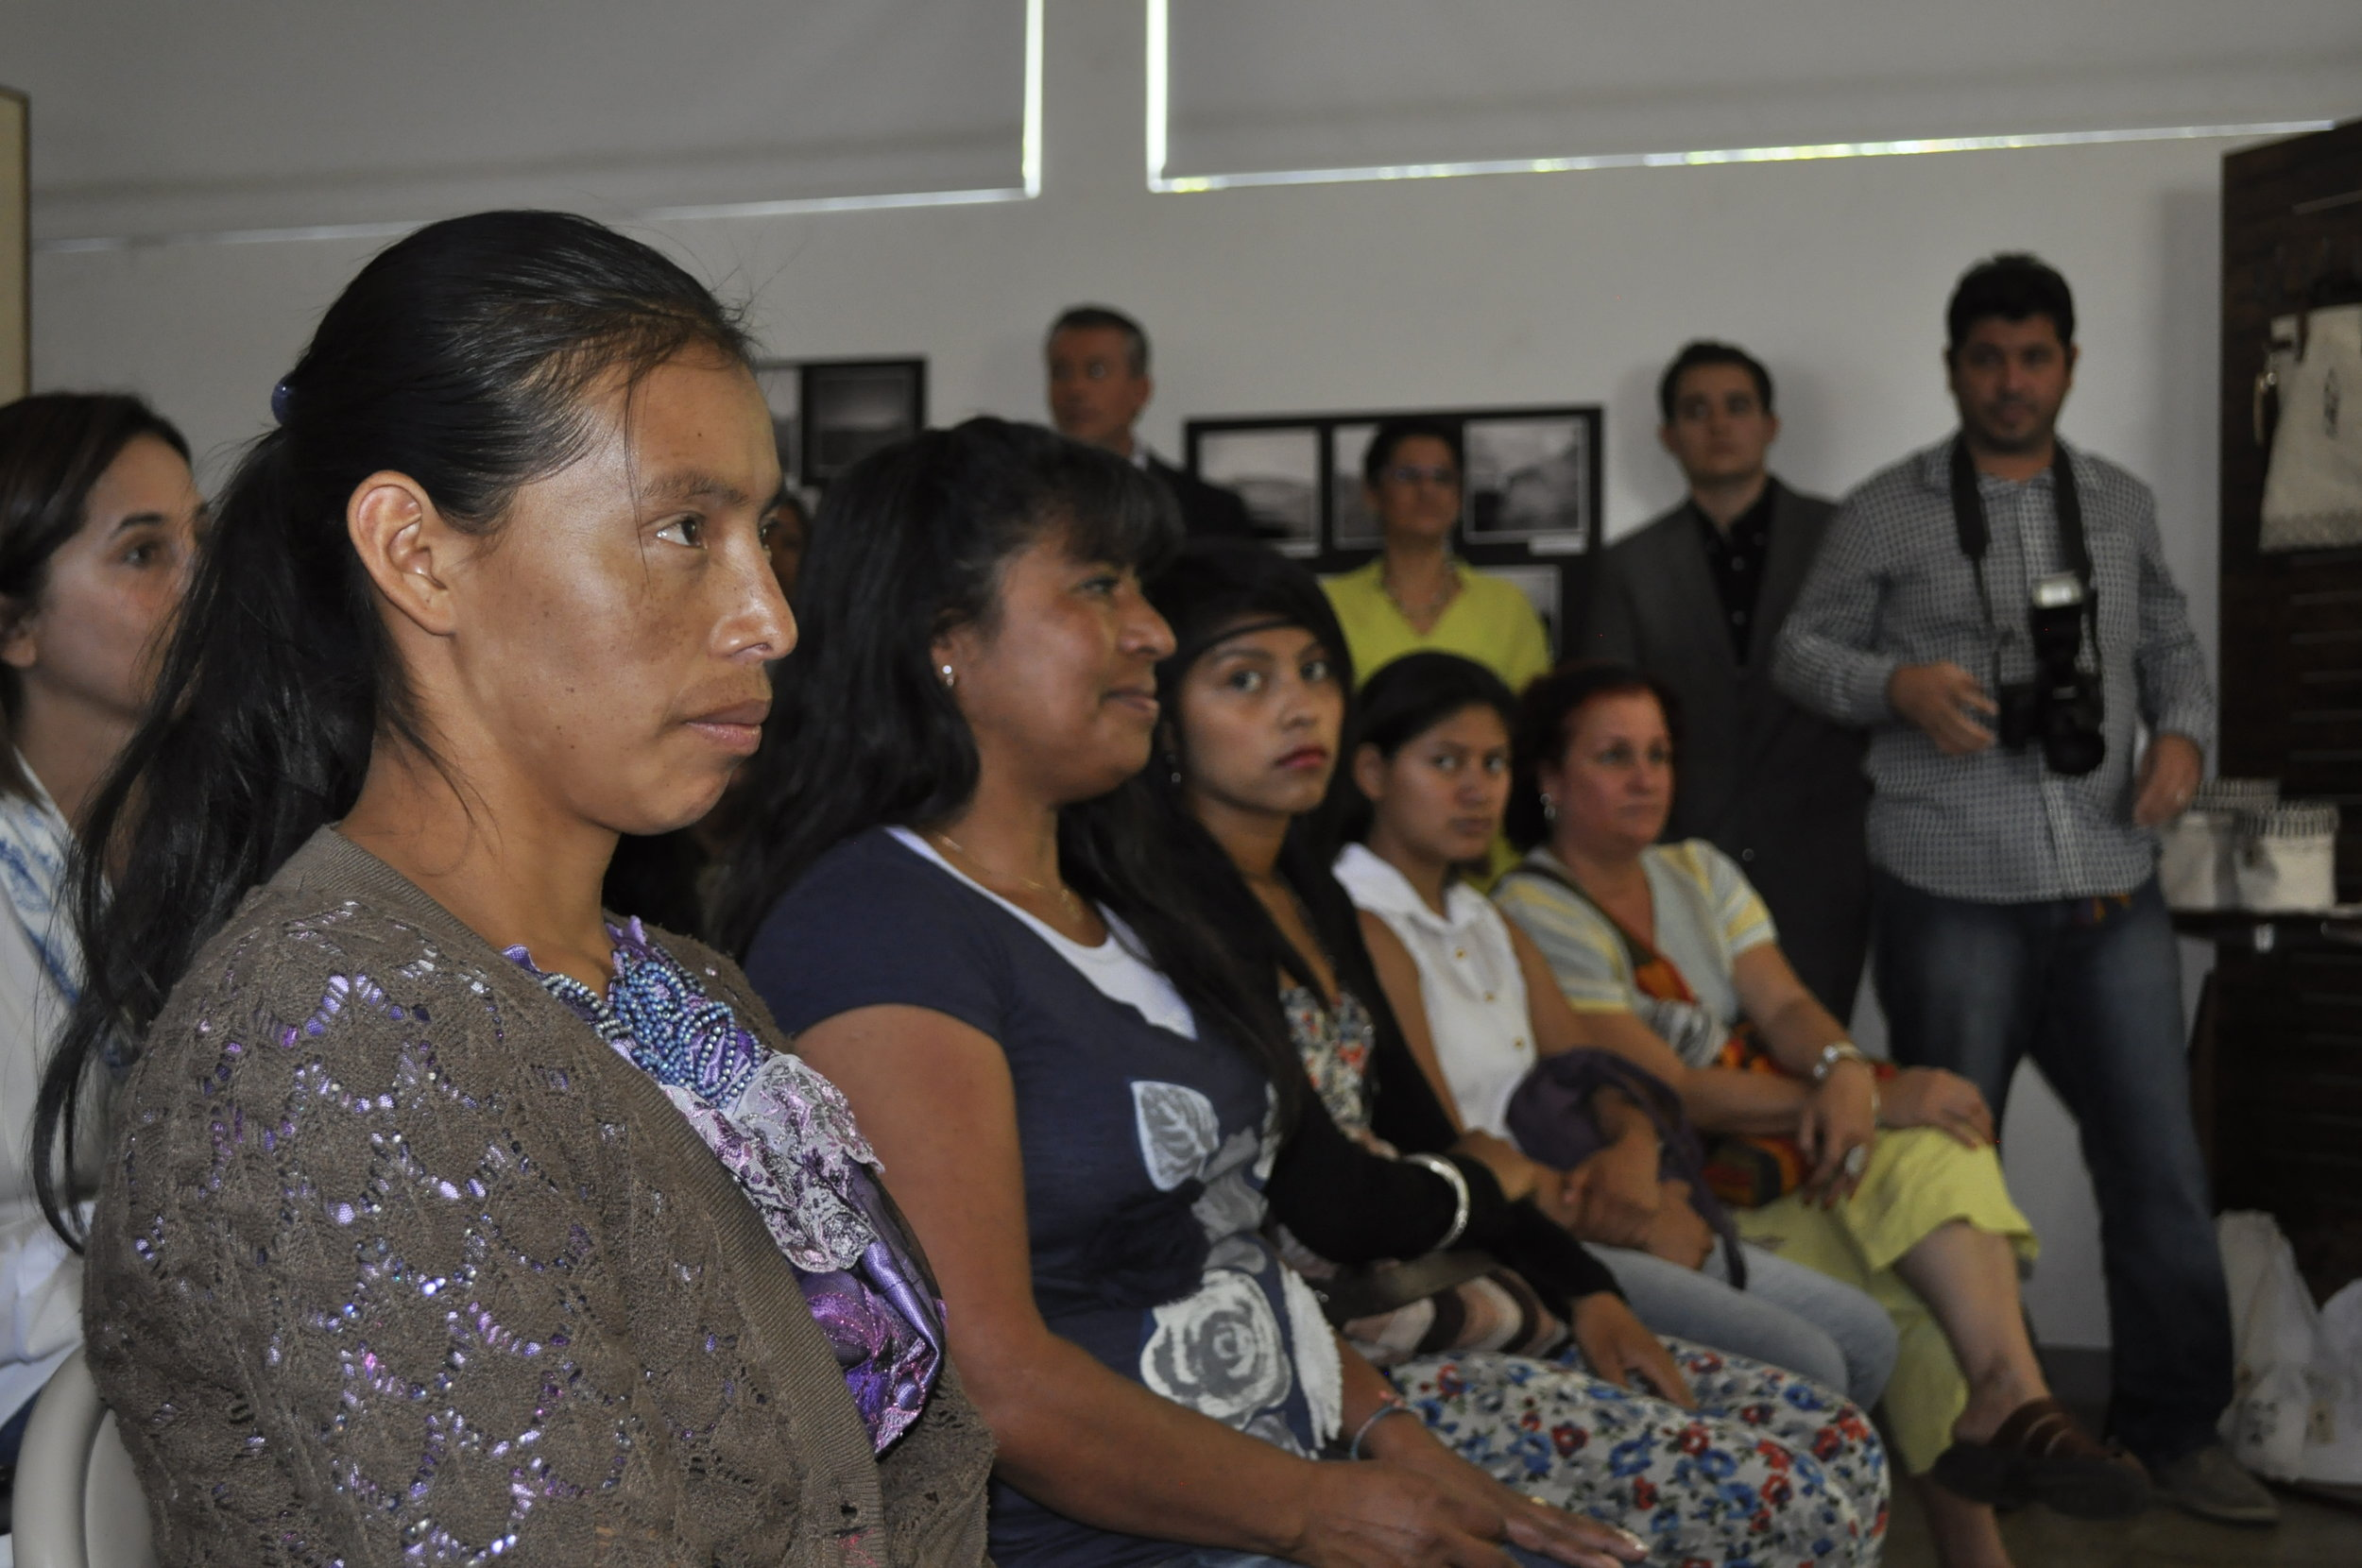 Kaminaljuyu, Peru:  The site provides no current economic benefit to its surrounding community. SPI is working with local NGO  Comunidades de la Tierra (Communities of the Earth) to provide capacity training to 15 local women artisan-producers. The women are learning business and production skills to make a variety of goods under the brand 'Rebirth Kaminaljuyu'. The products include artistic interpretations of ancient iconography and stories about the artisans themselves. Rebirth Kaminaljuyu products are being sold around the world through our partner  Wakami .